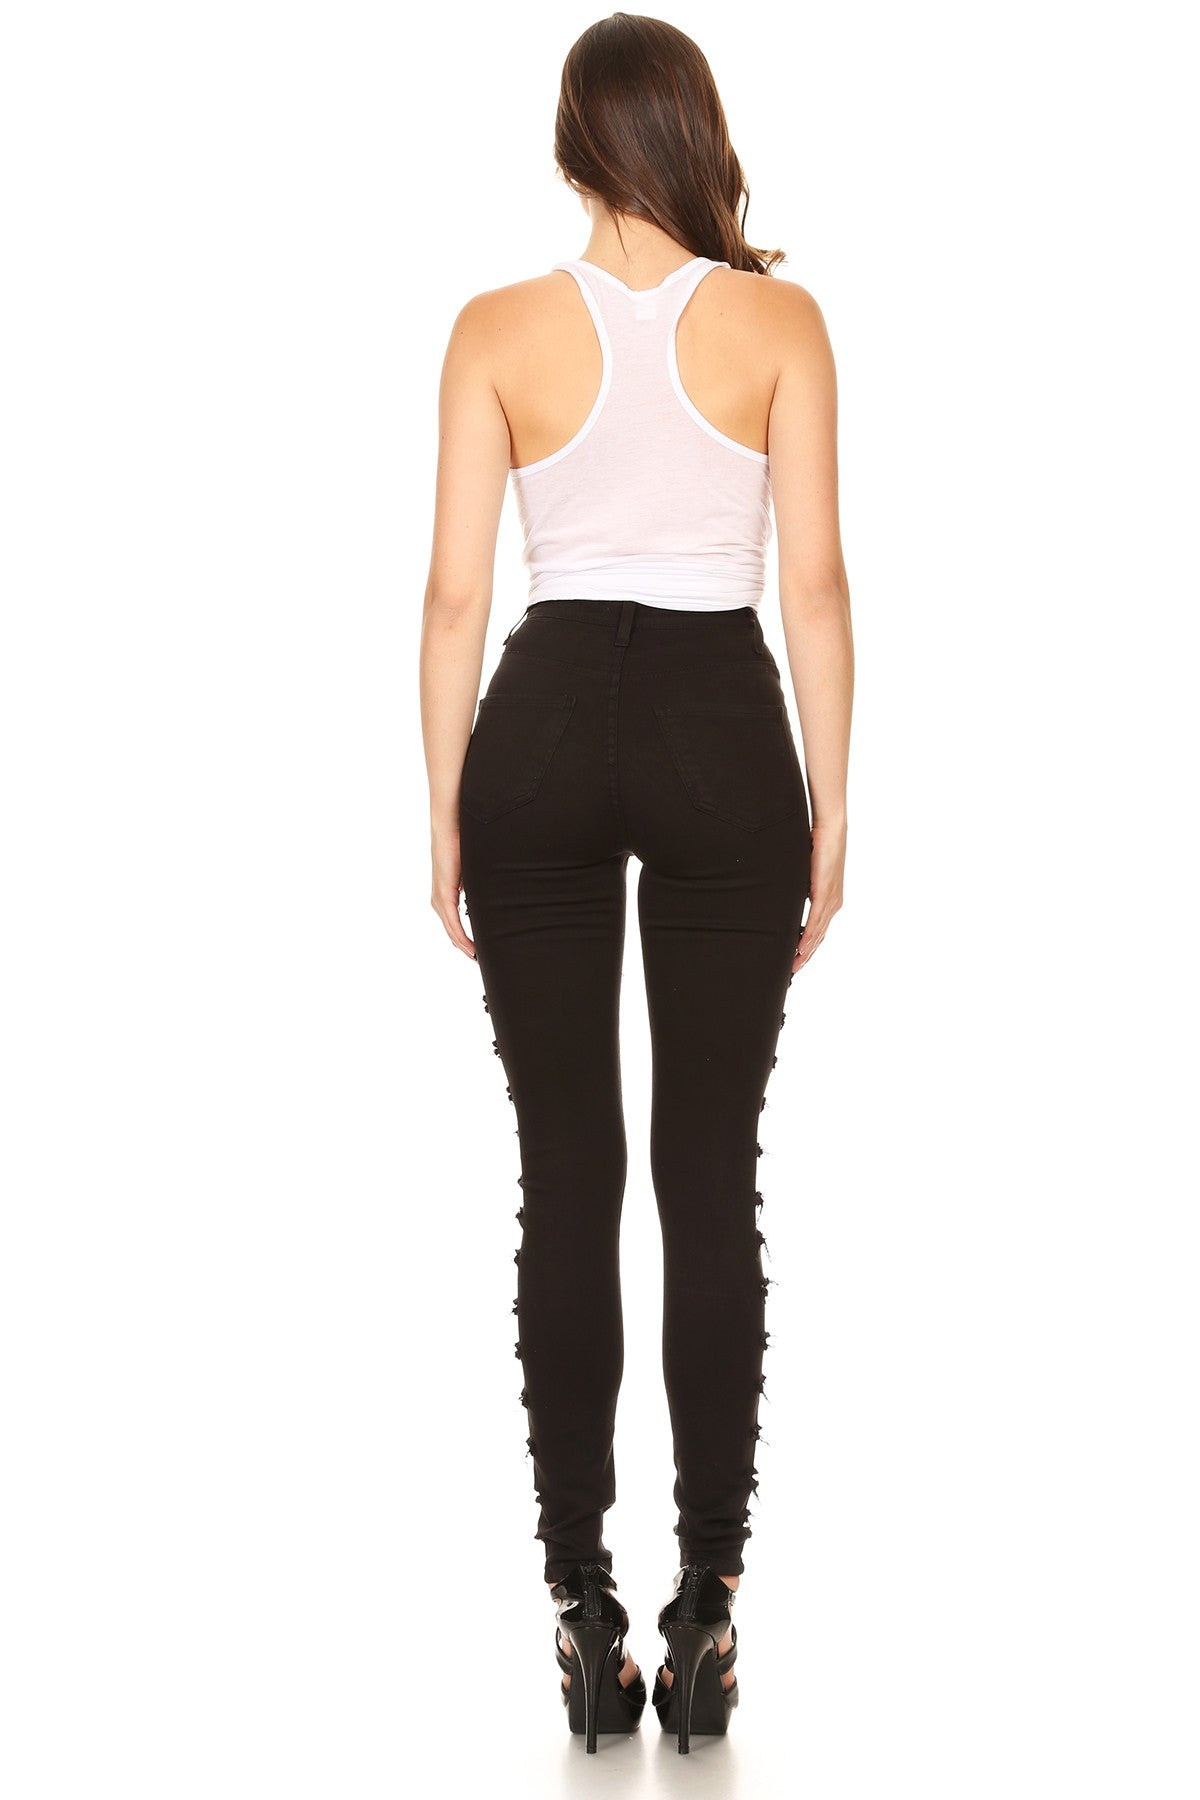 High Rise Skinny Jeans Outseam Ladder Slices